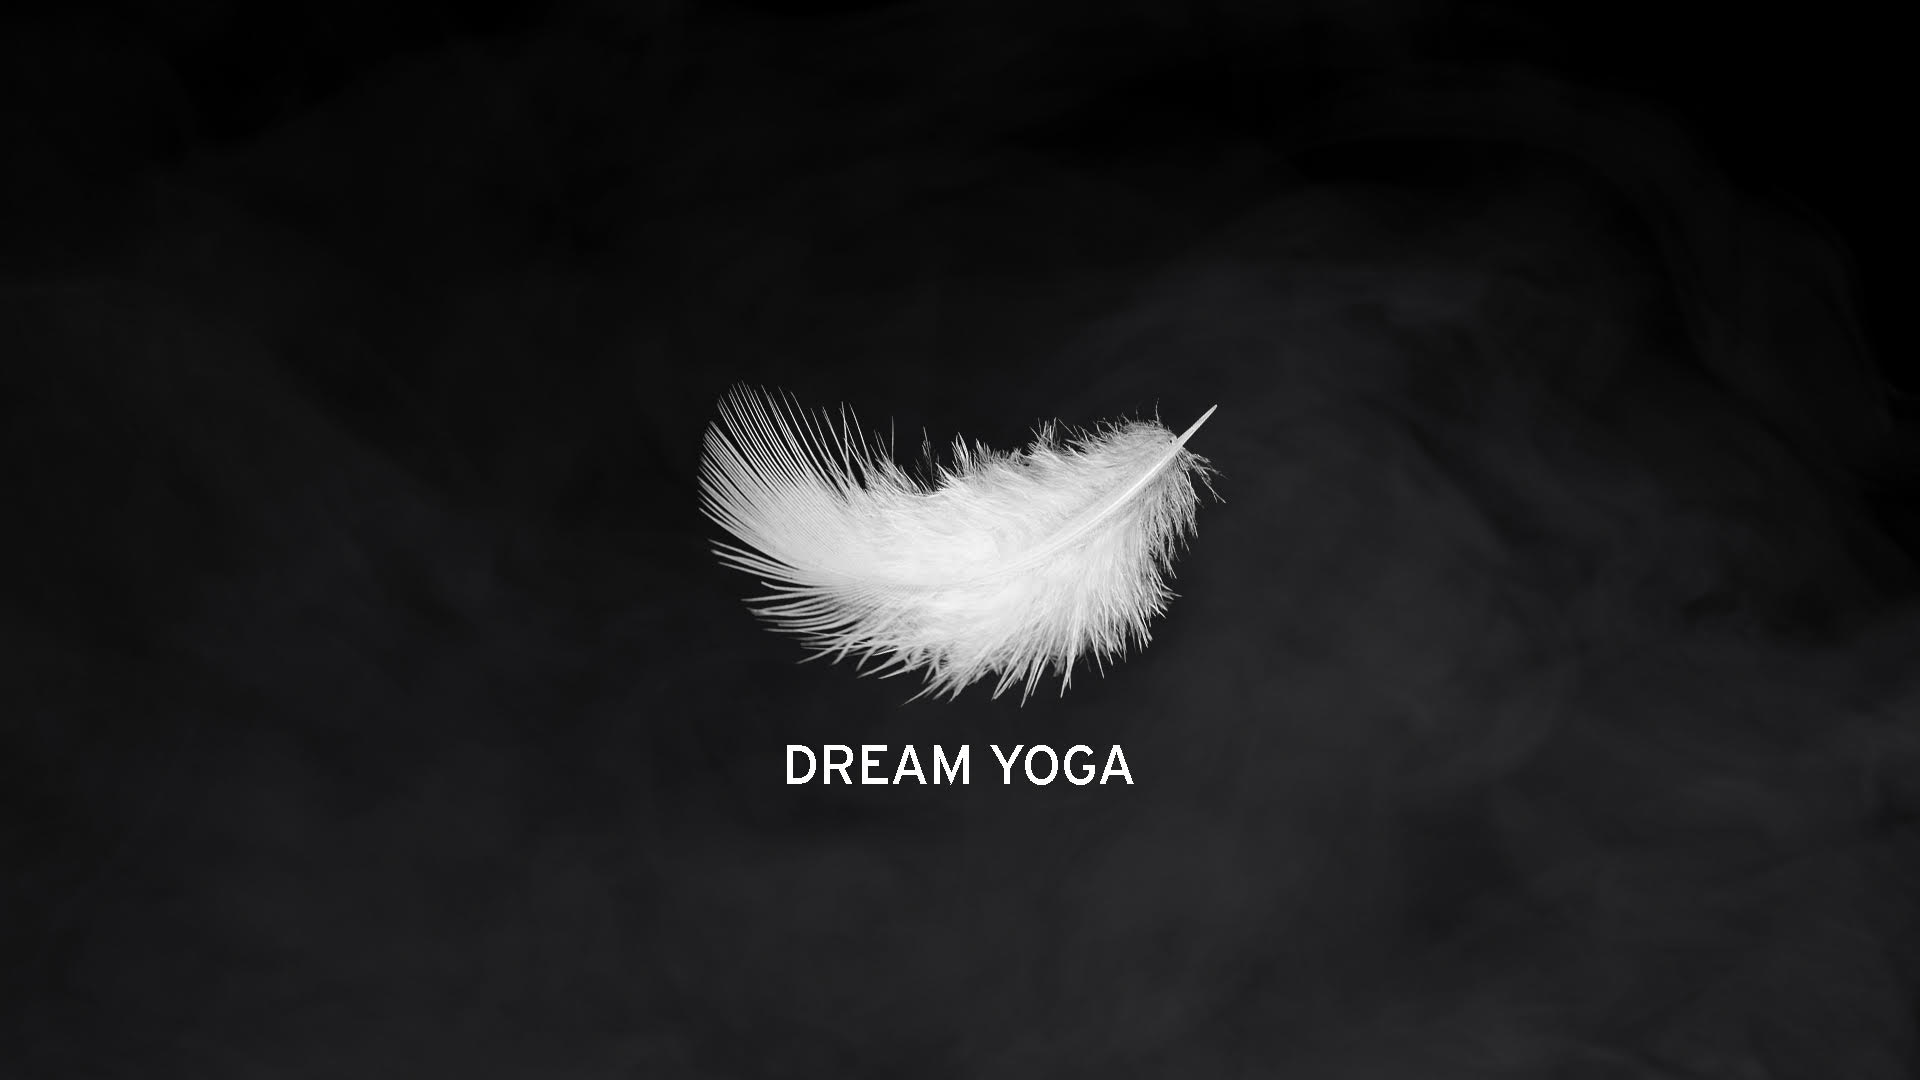 Lucid Dreaming vs. Dream Yoga: What's the Difference?